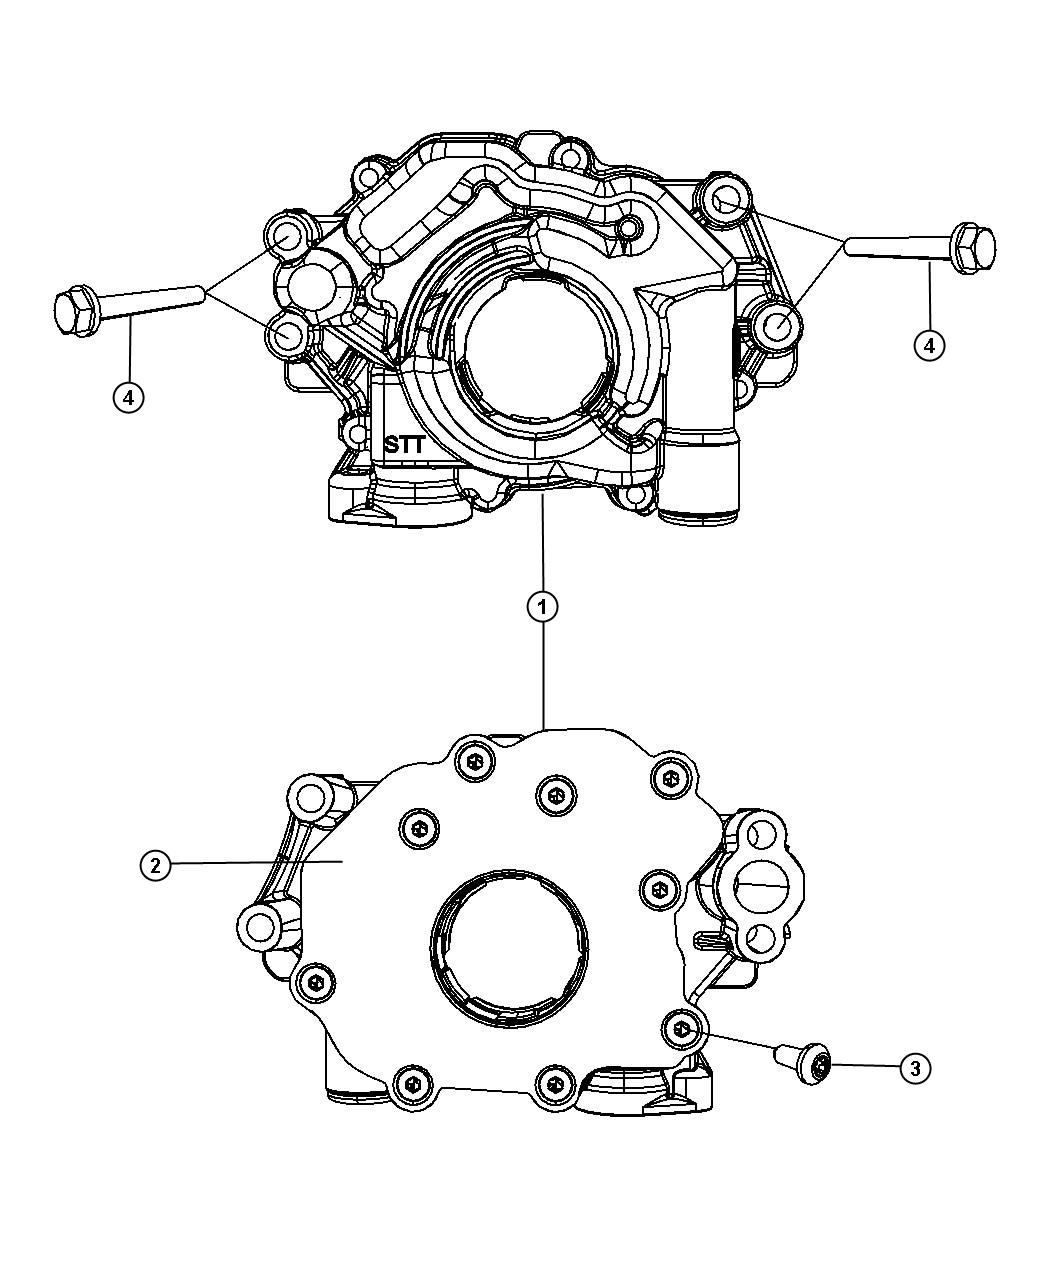 Dodge Durango Used for: BOLT AND CONED WASHER. Hex Head